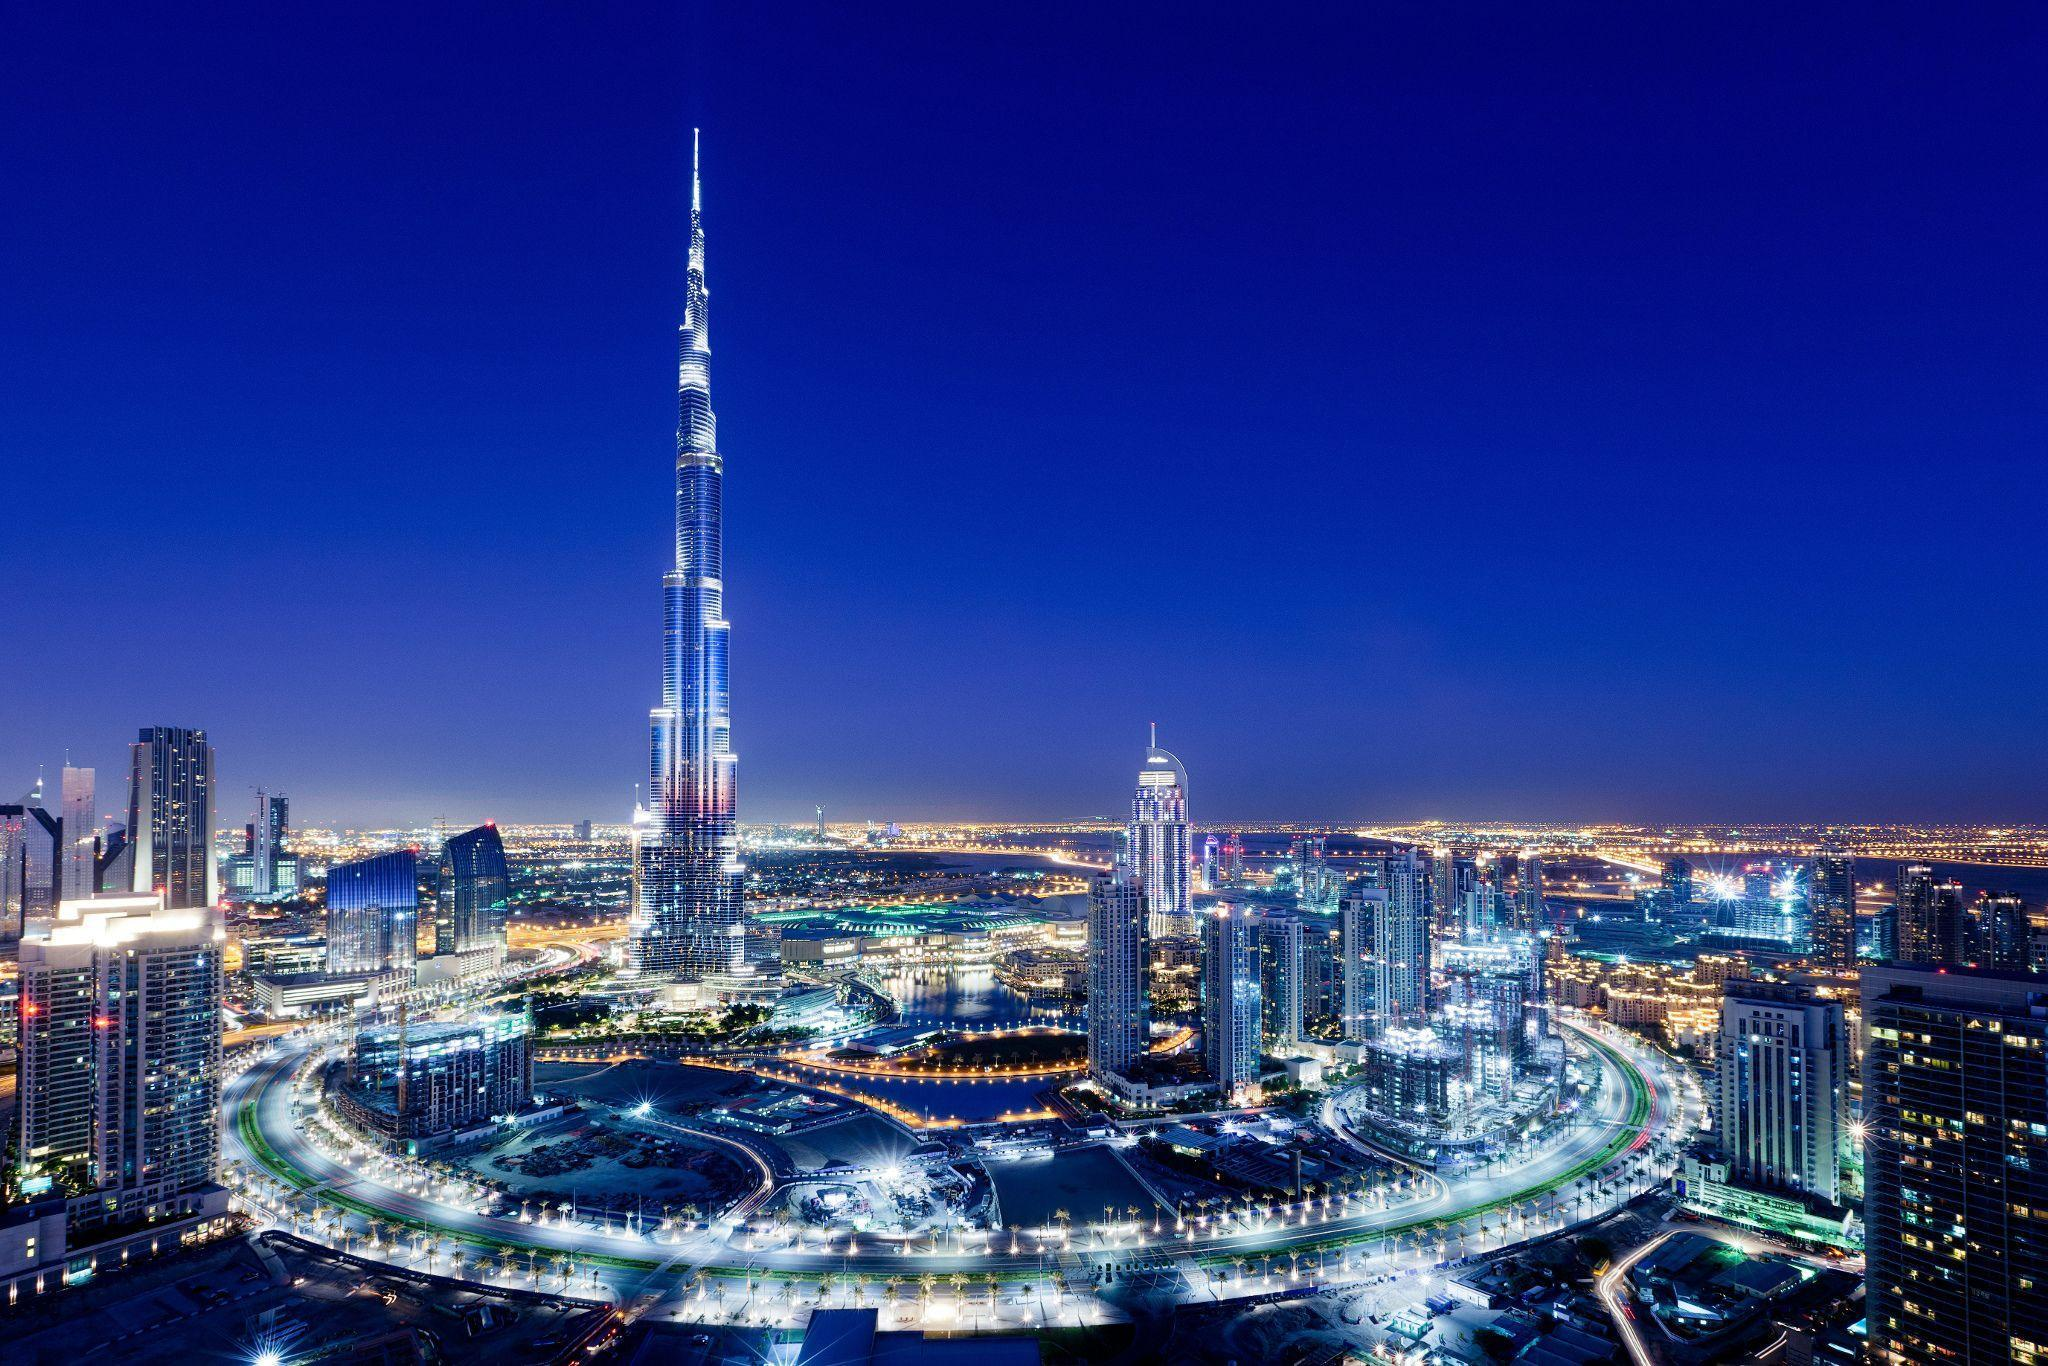 Burj Khalifa Wallpapers - Wallpaper Cave